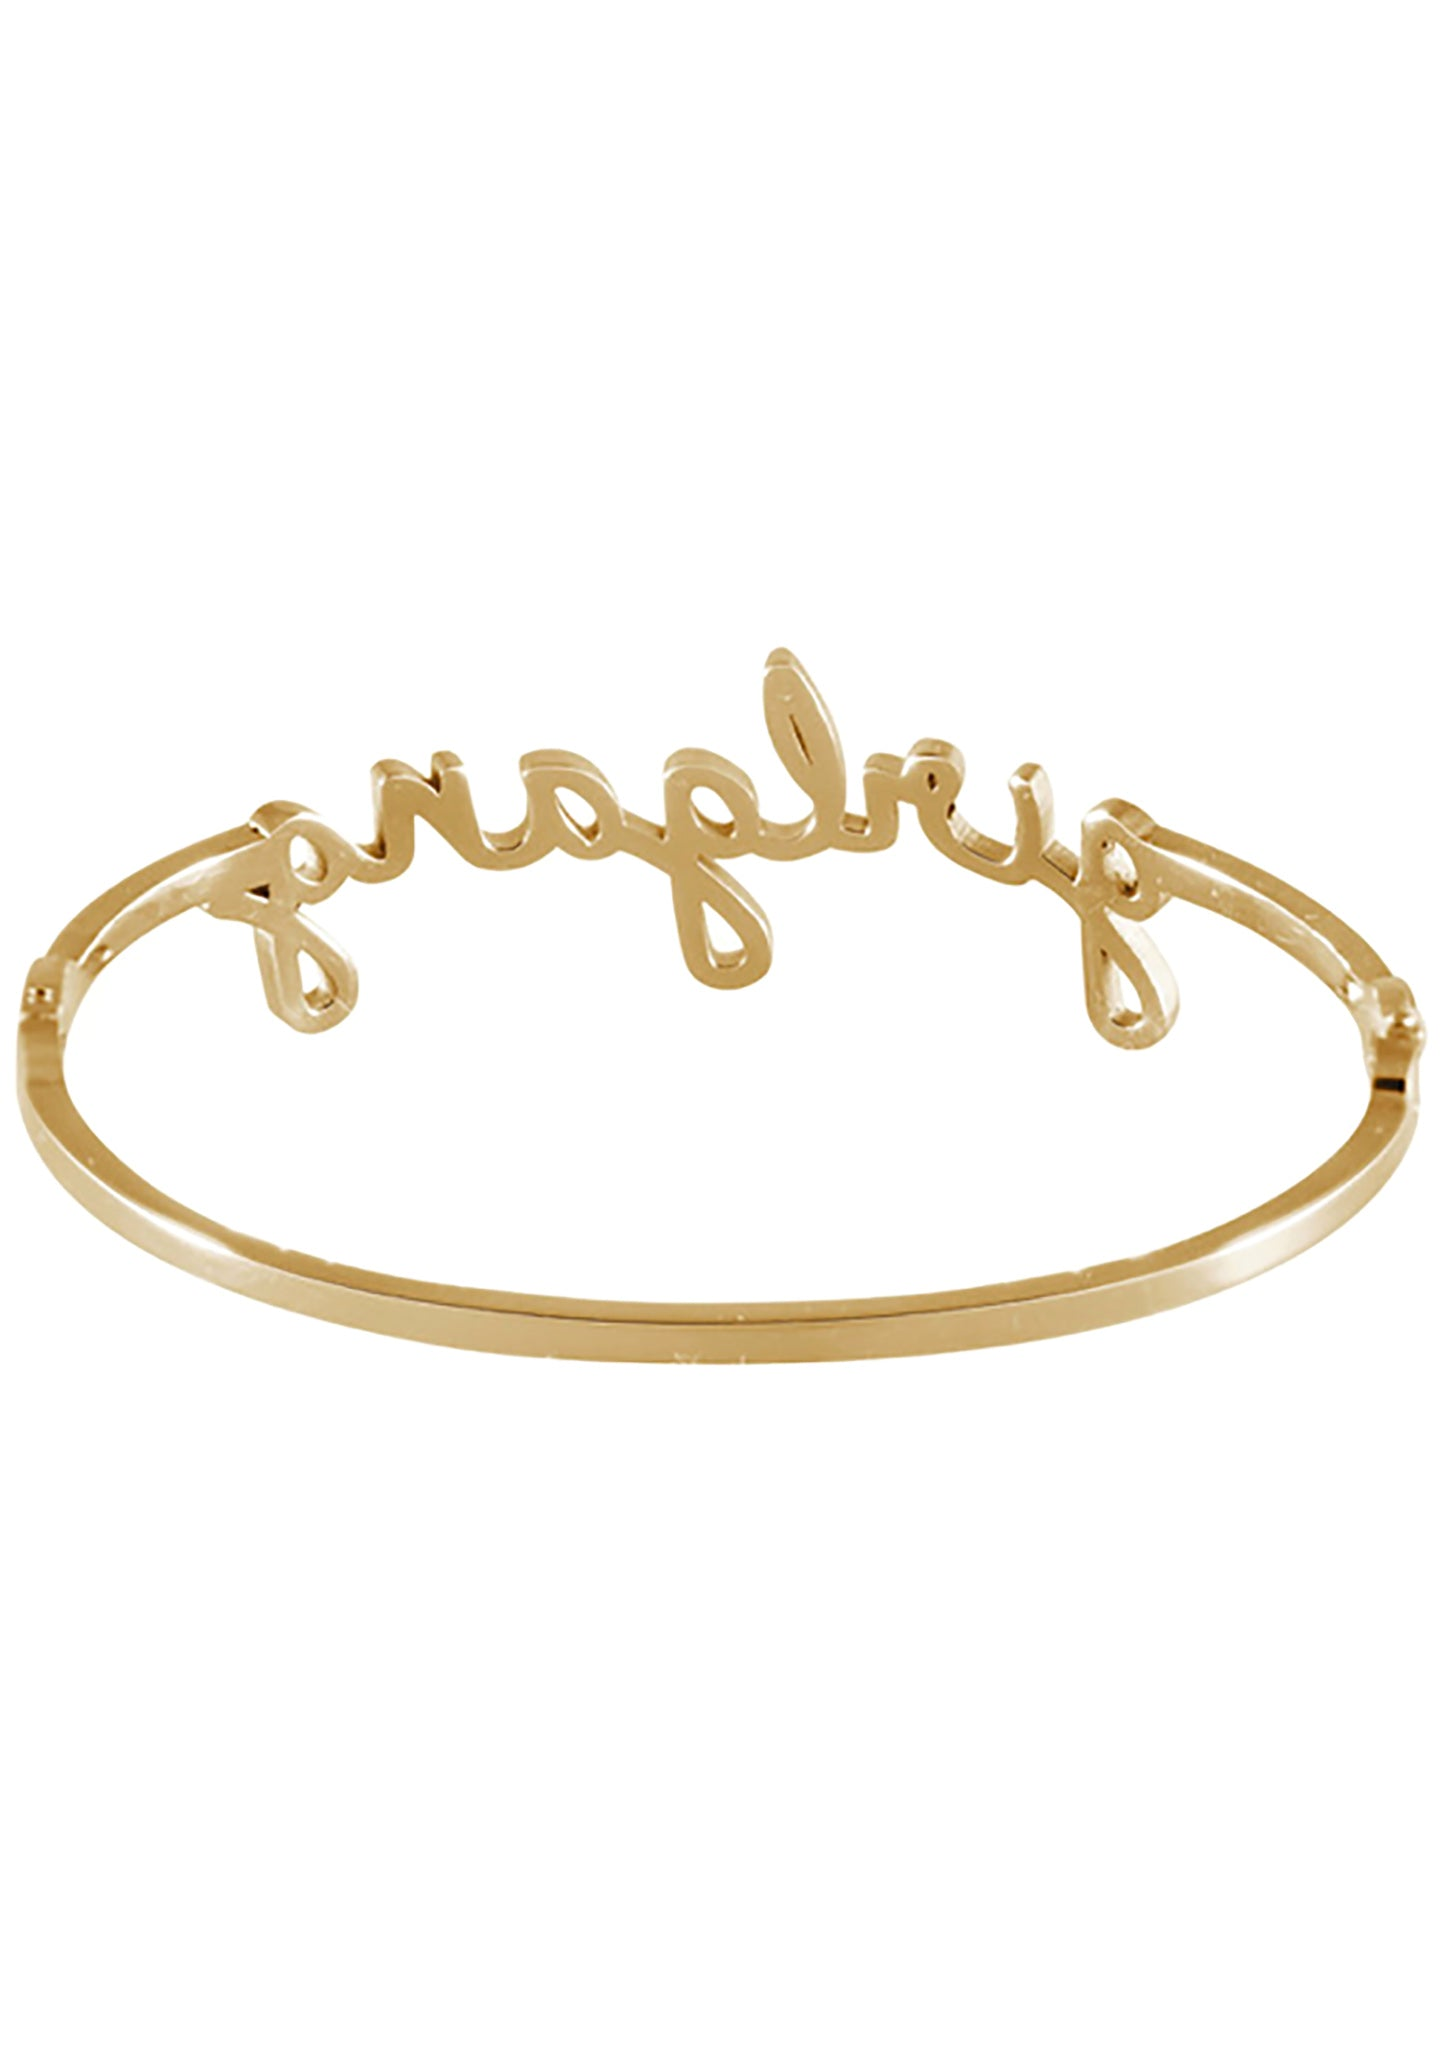 Wanderlust + Co Girlgang Bangle in Gold